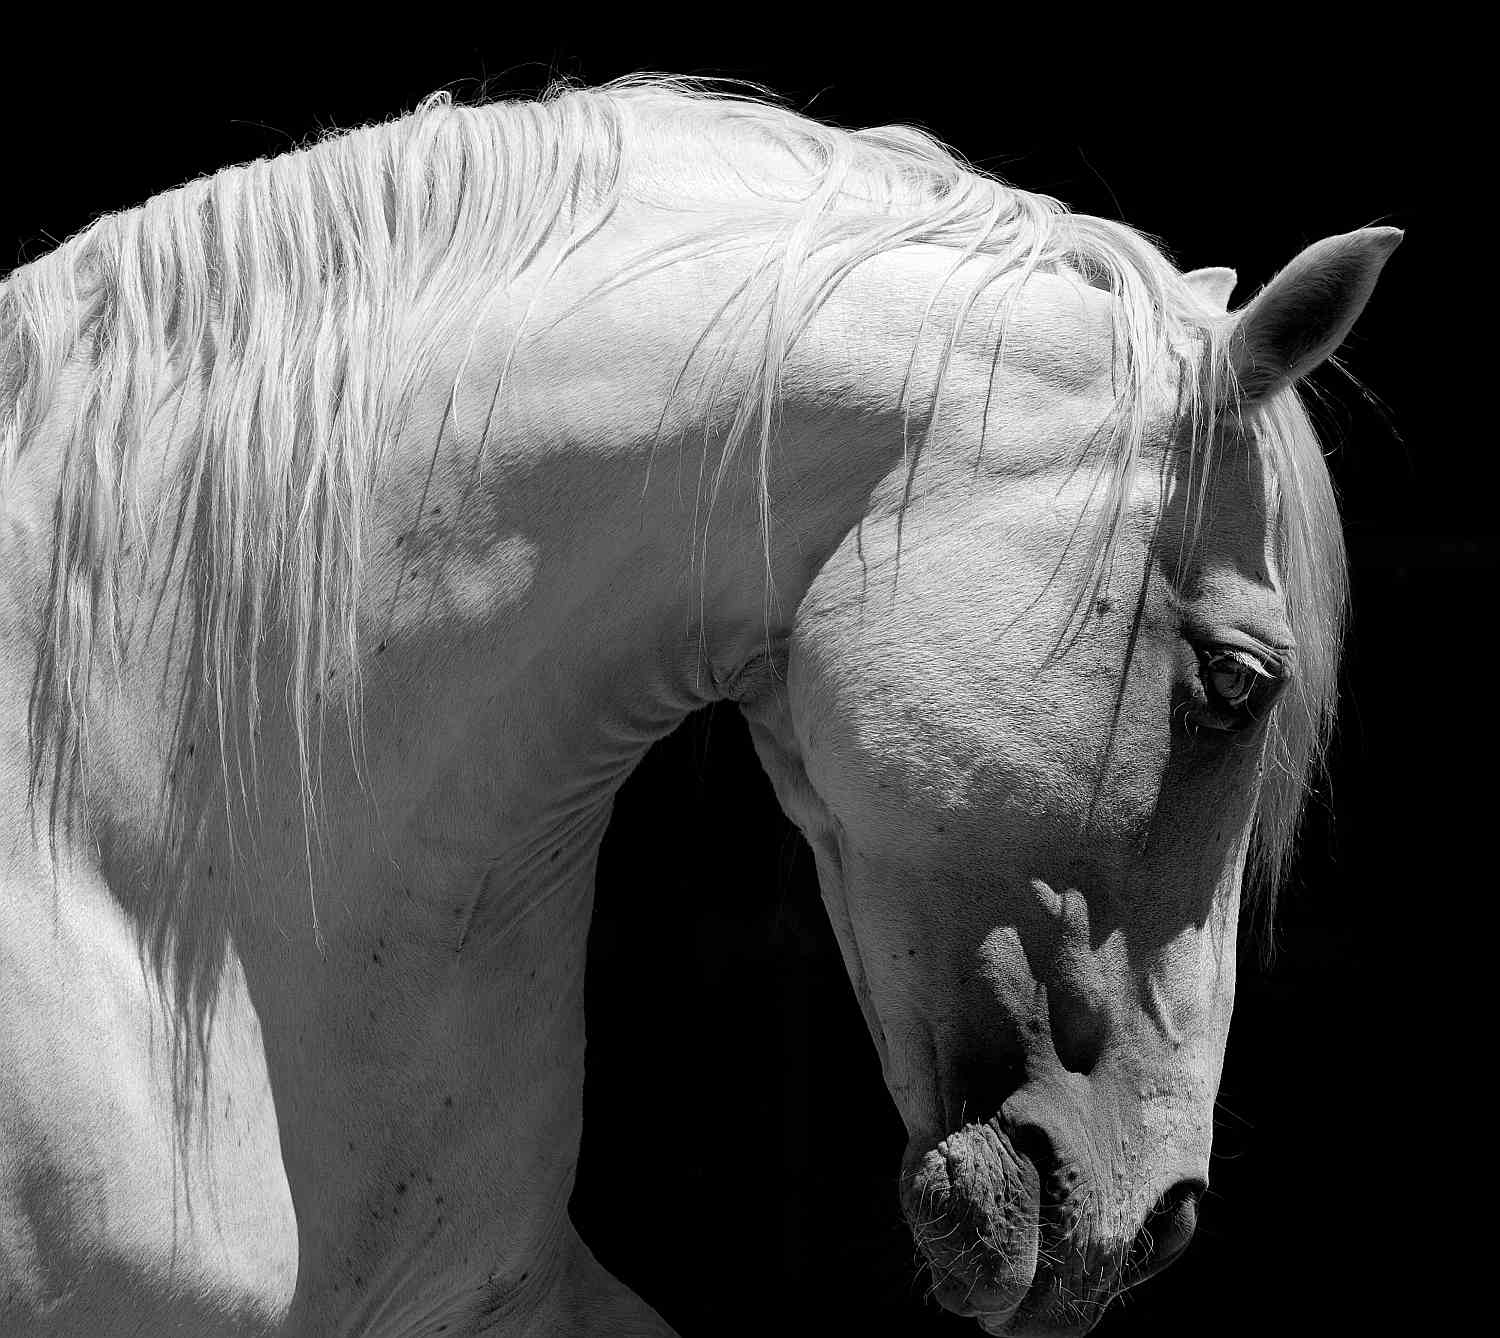 White horse with arched neck and heavy crest.